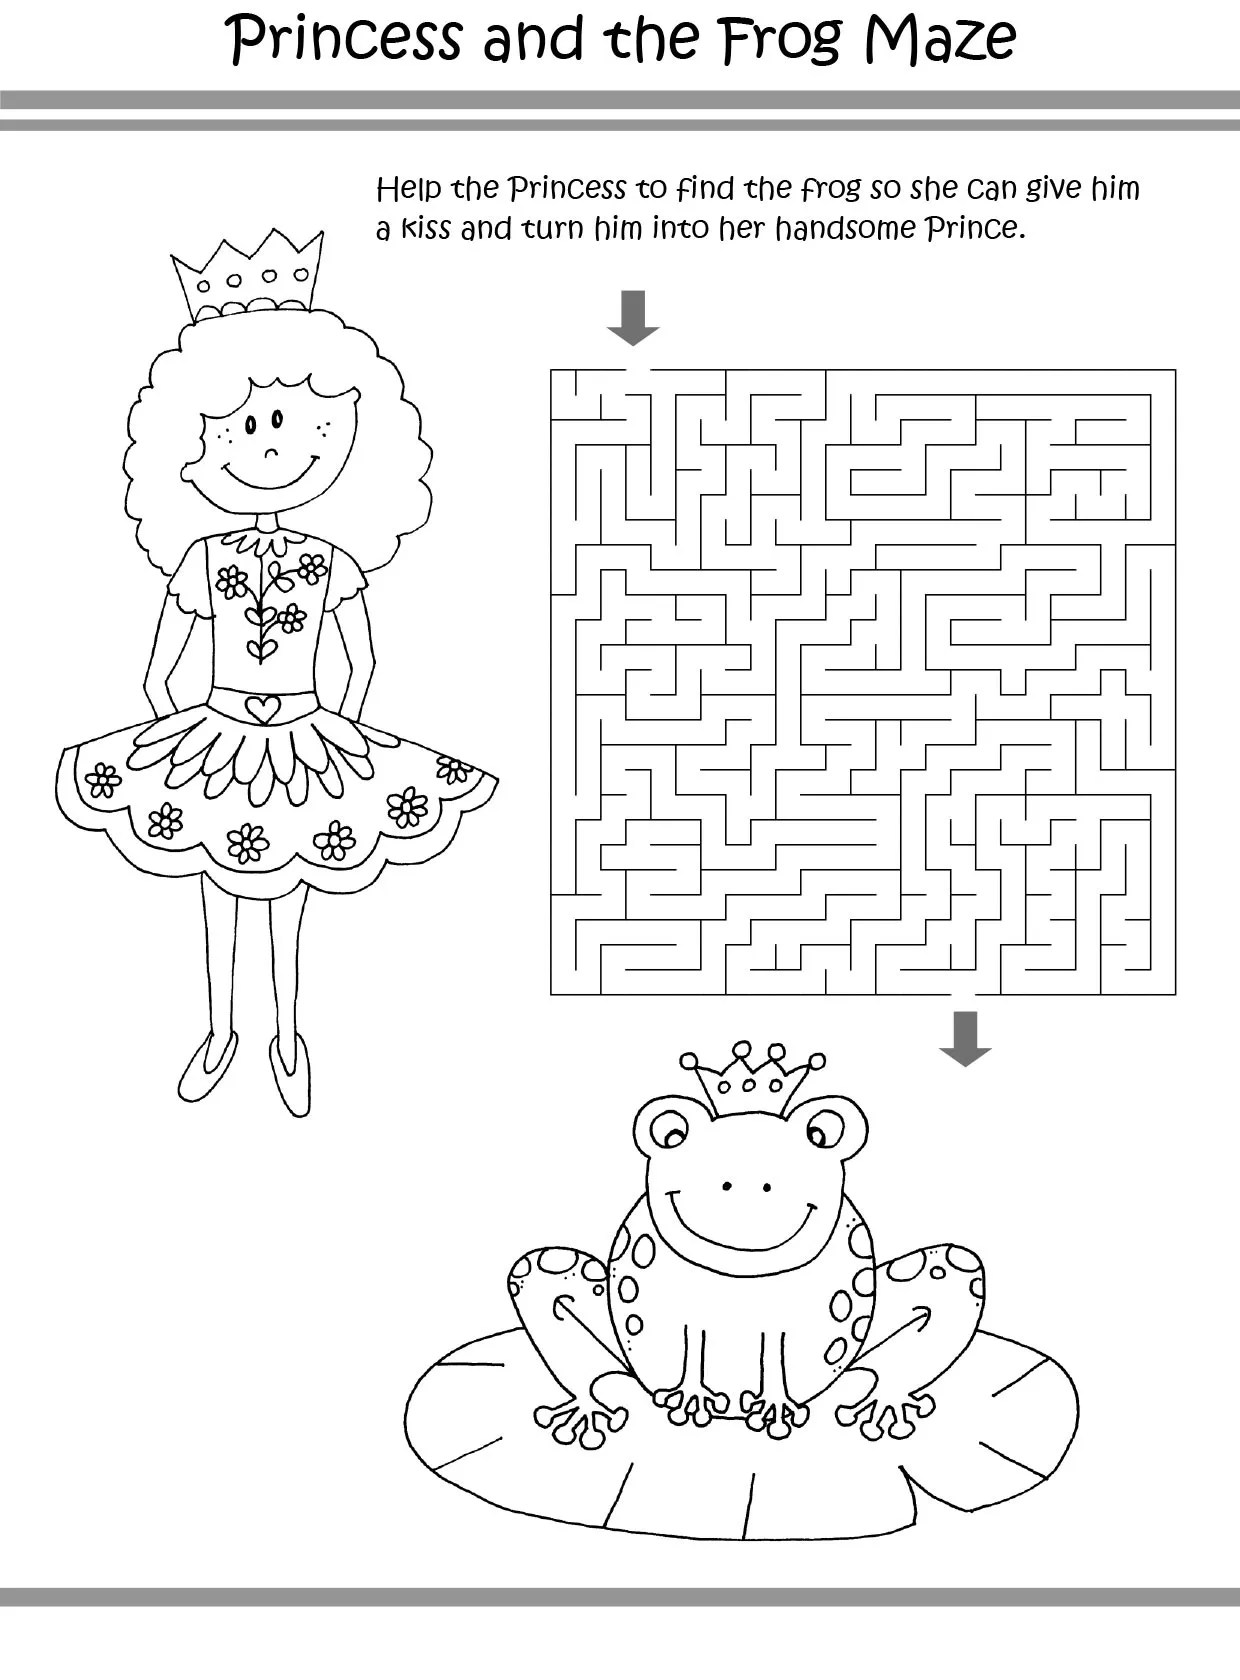 Free Maze Puzzles Coloring Pages Printable Maze Puzzles